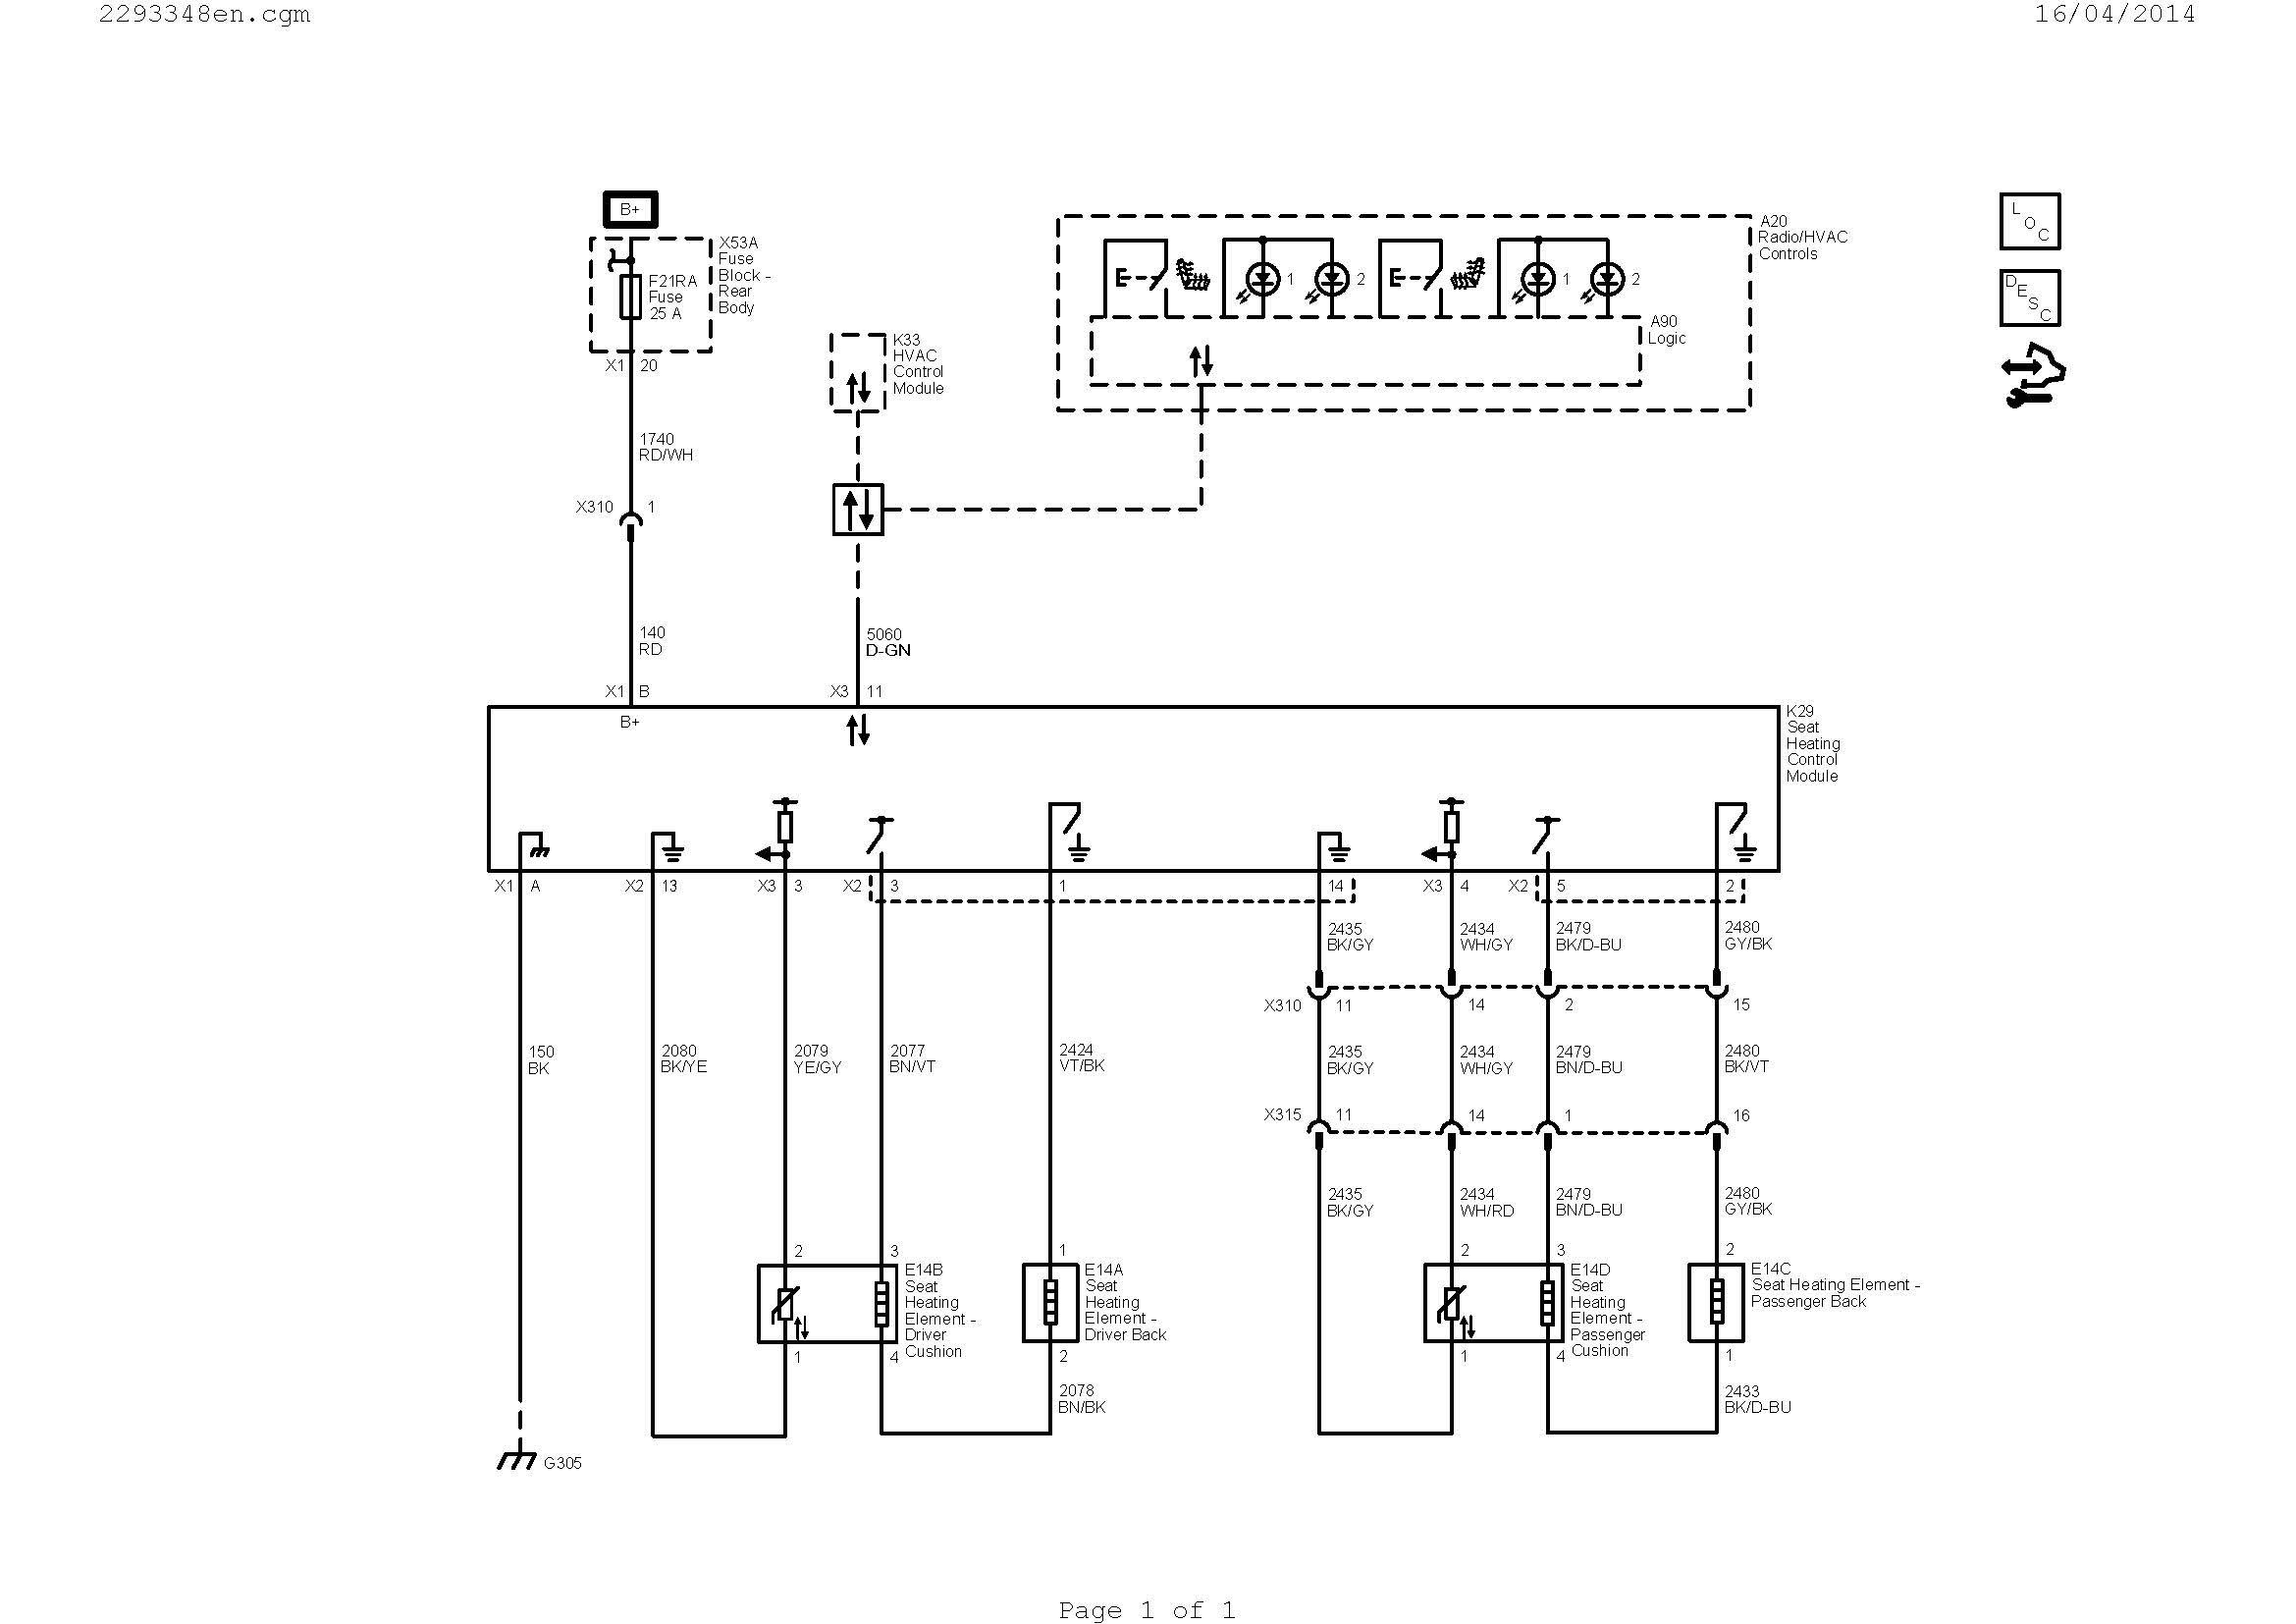 Nest 3 Wiring Diagram | Free Wiring Diagram Nest Thermostat Wiring Diagram For Multi Zone on nest thermostat setup, nest thermostat backplate, nest smart thermostat vs honeywell, nest 2 stage heating wiring, electronic thermostat circuit diagram, nest thermostat parts, nest thermostat battery, nest thermostat problems, nest thermostat humidifier wiring, nest thermostat wiring plate, nest thermostat heat pump, nest thermostat review, nest thermostat controls, nest zoned wiring, nest thermostat installation, nest wiring guide, nest learning thermostat wiring, nest thermostat connections, halogen transformer circuit diagram, nest thermostat wires,